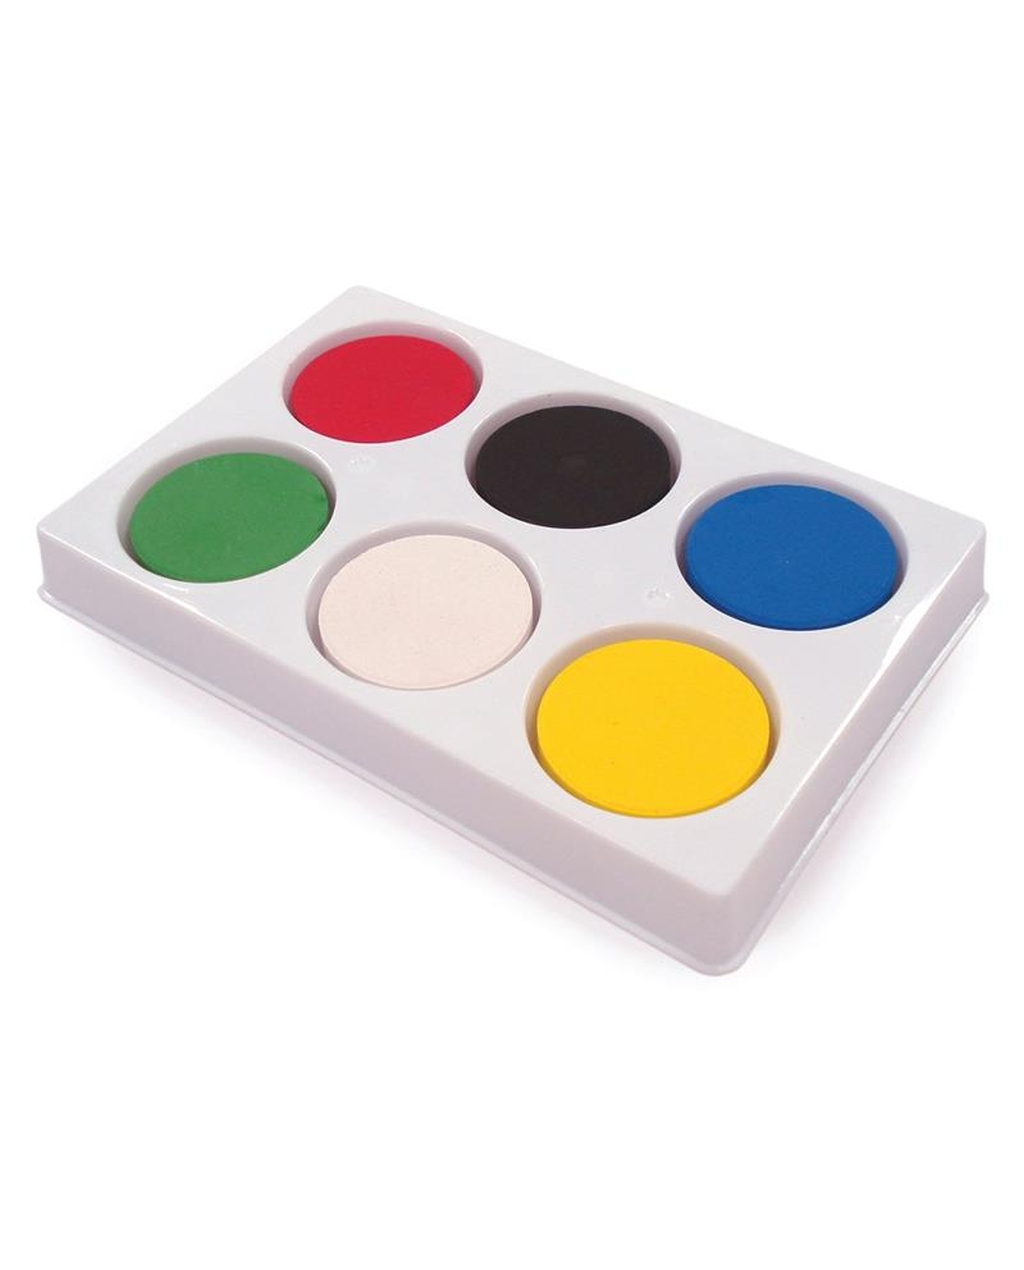 6 Well Block Palette With Paint